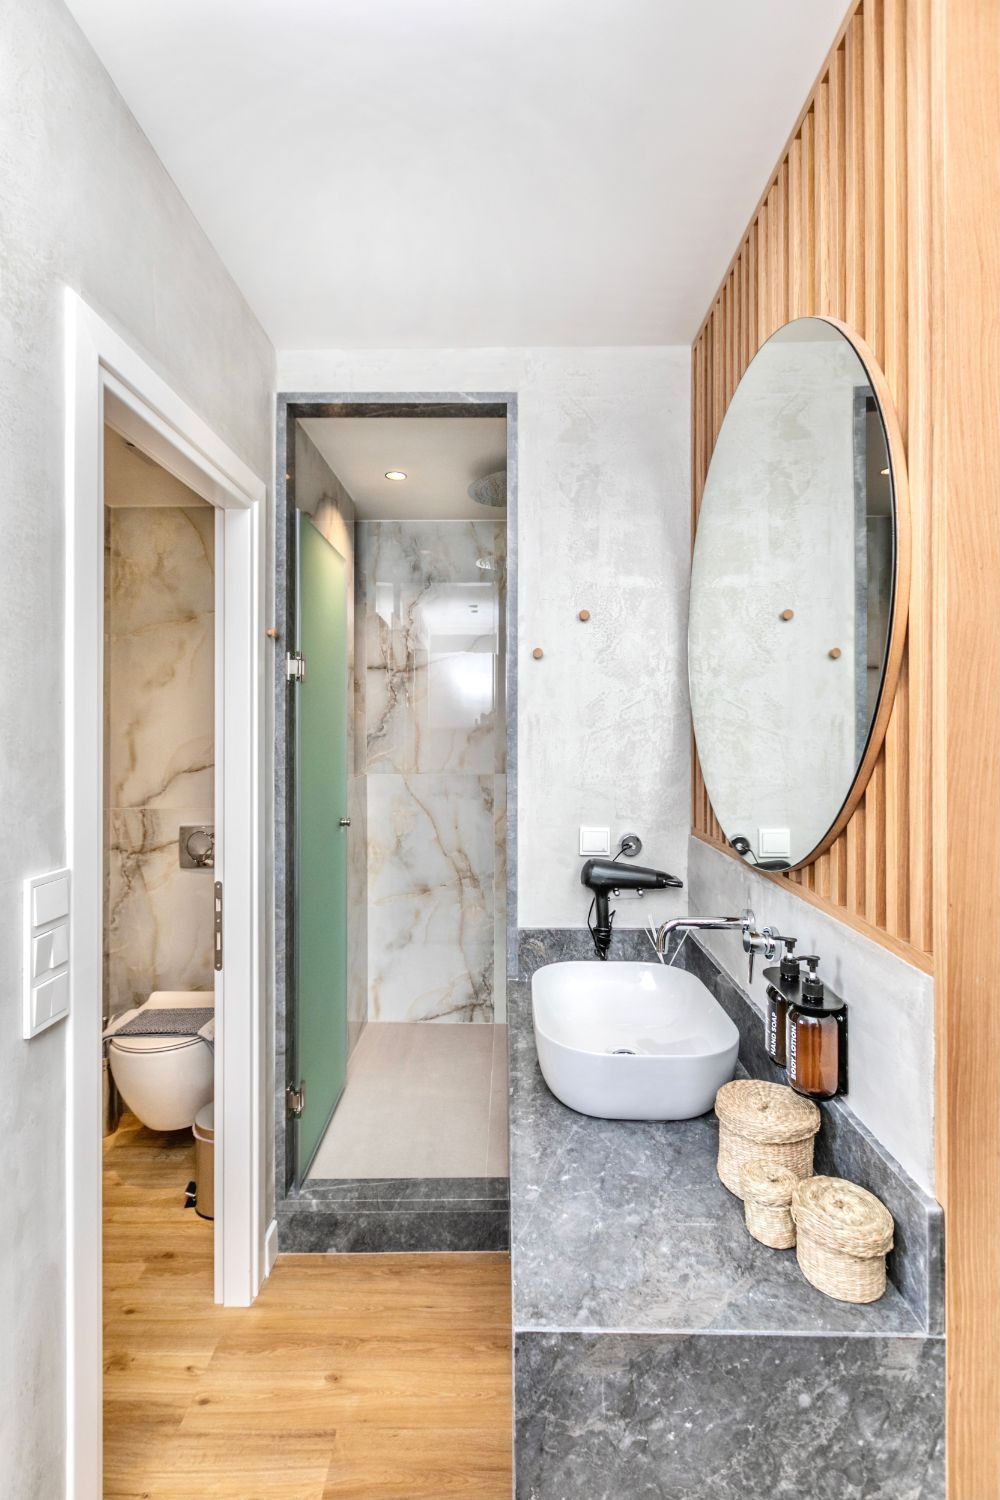 #706 Bathroom with Shower and WC